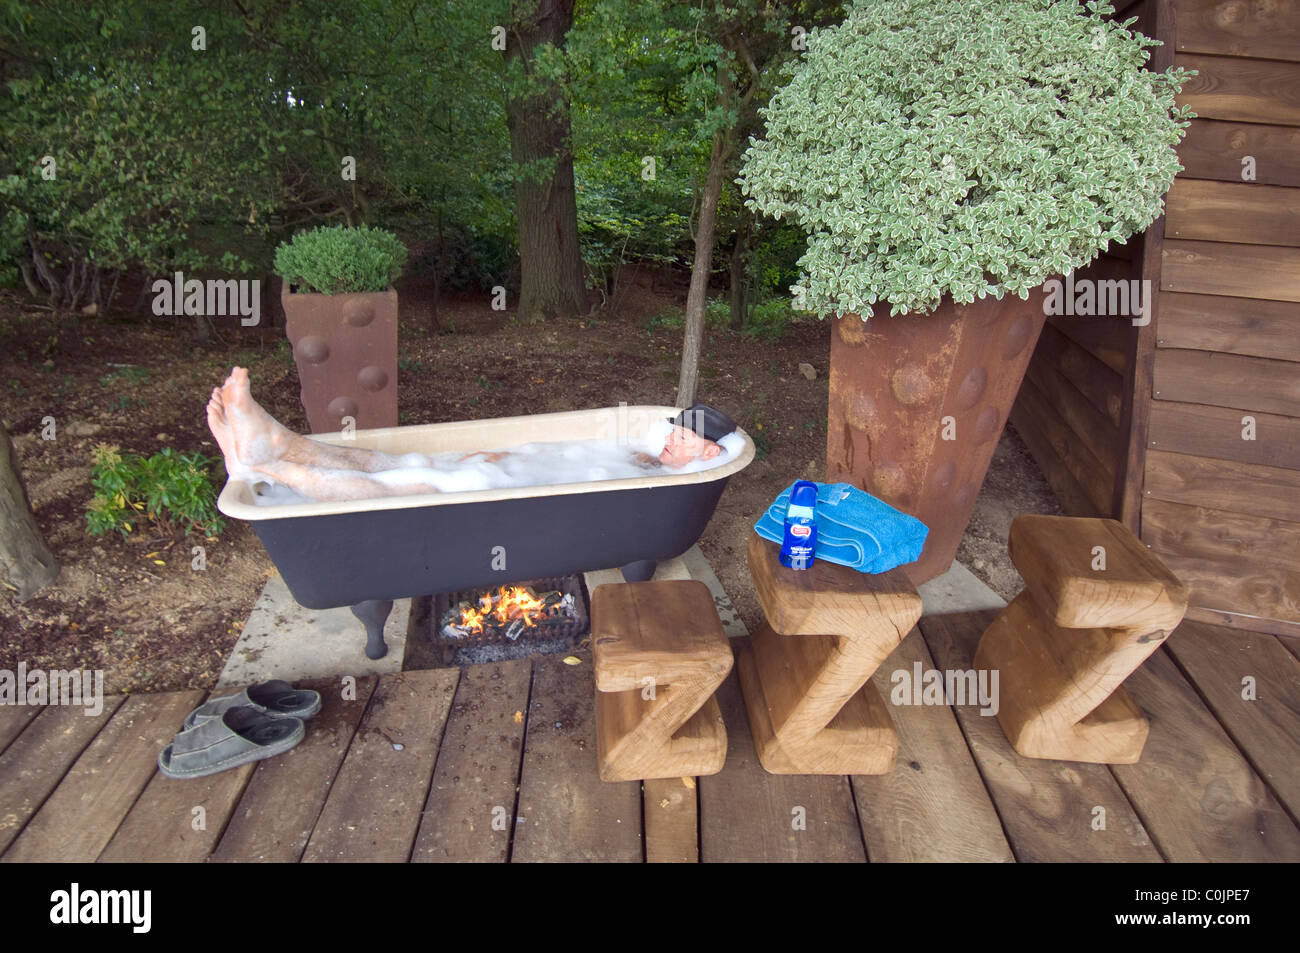 Man relaxing in his coal fired outdoor bathtub by his cabin in the woods. - Stock Image